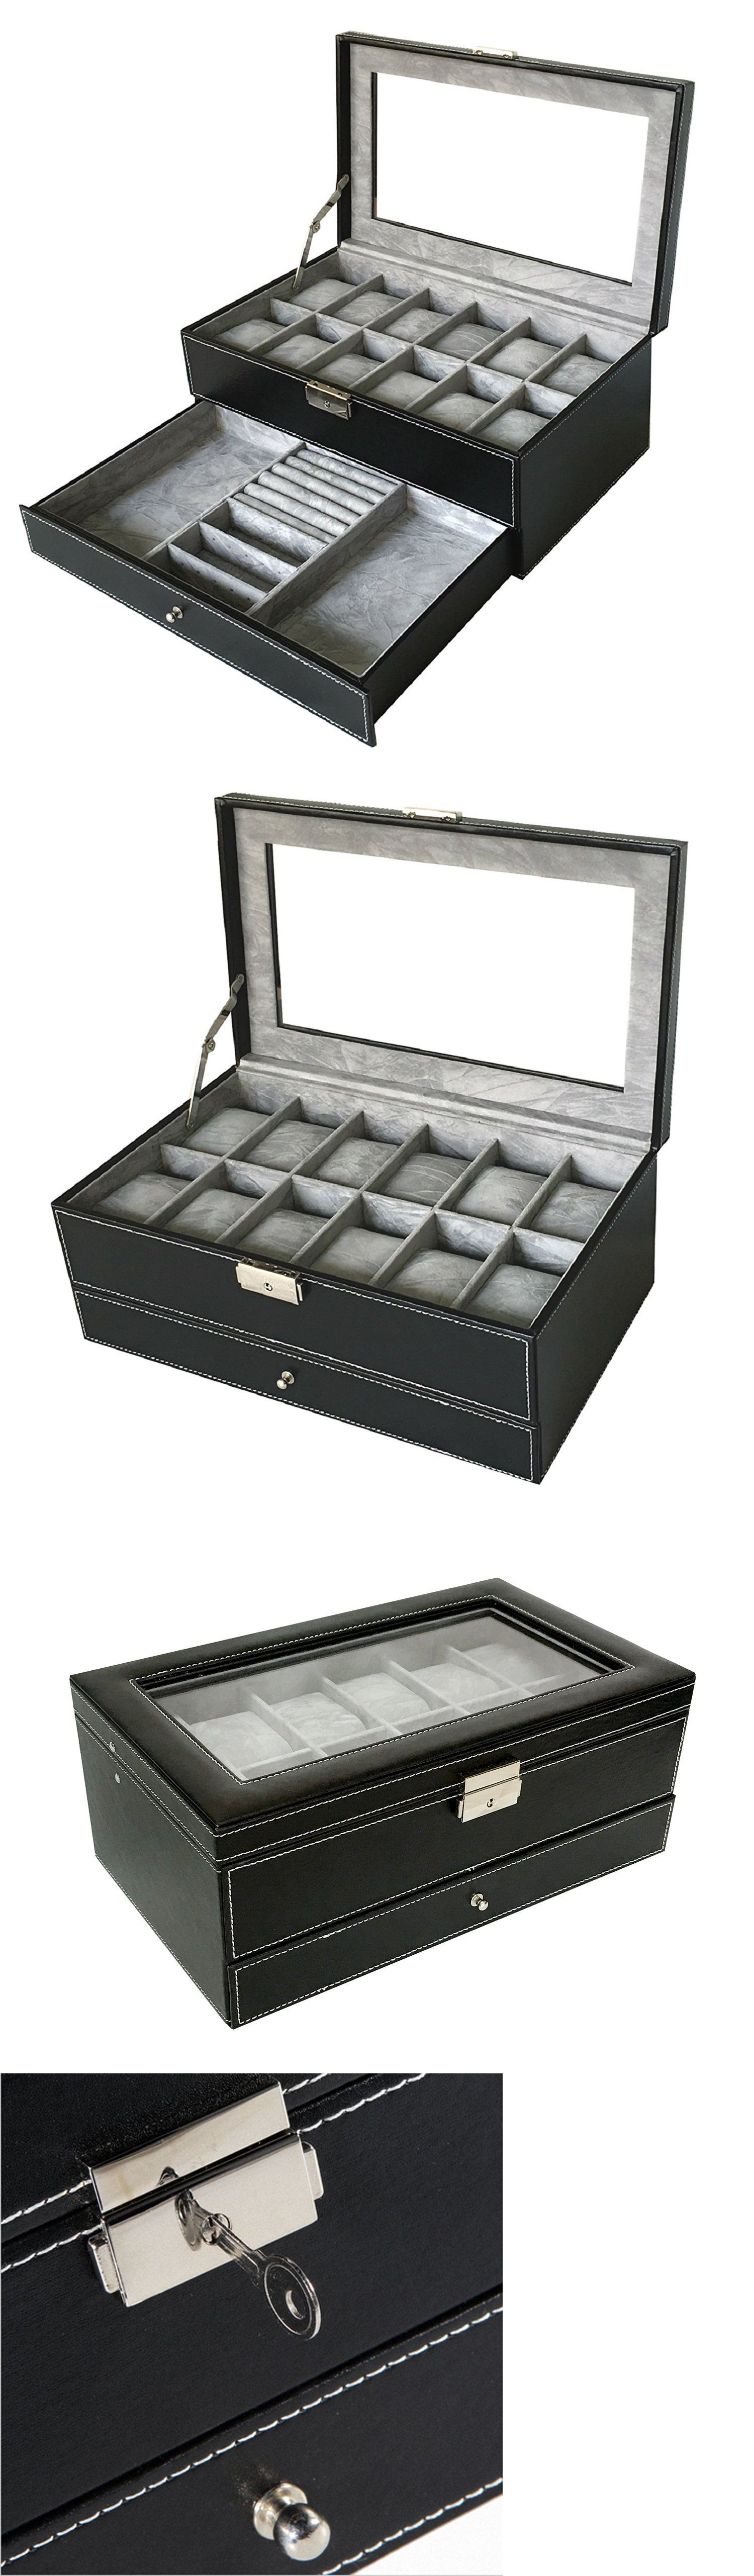 Jewelry Boxes 3820 Watch Box Jewelry Case Organizer Large 12 Black